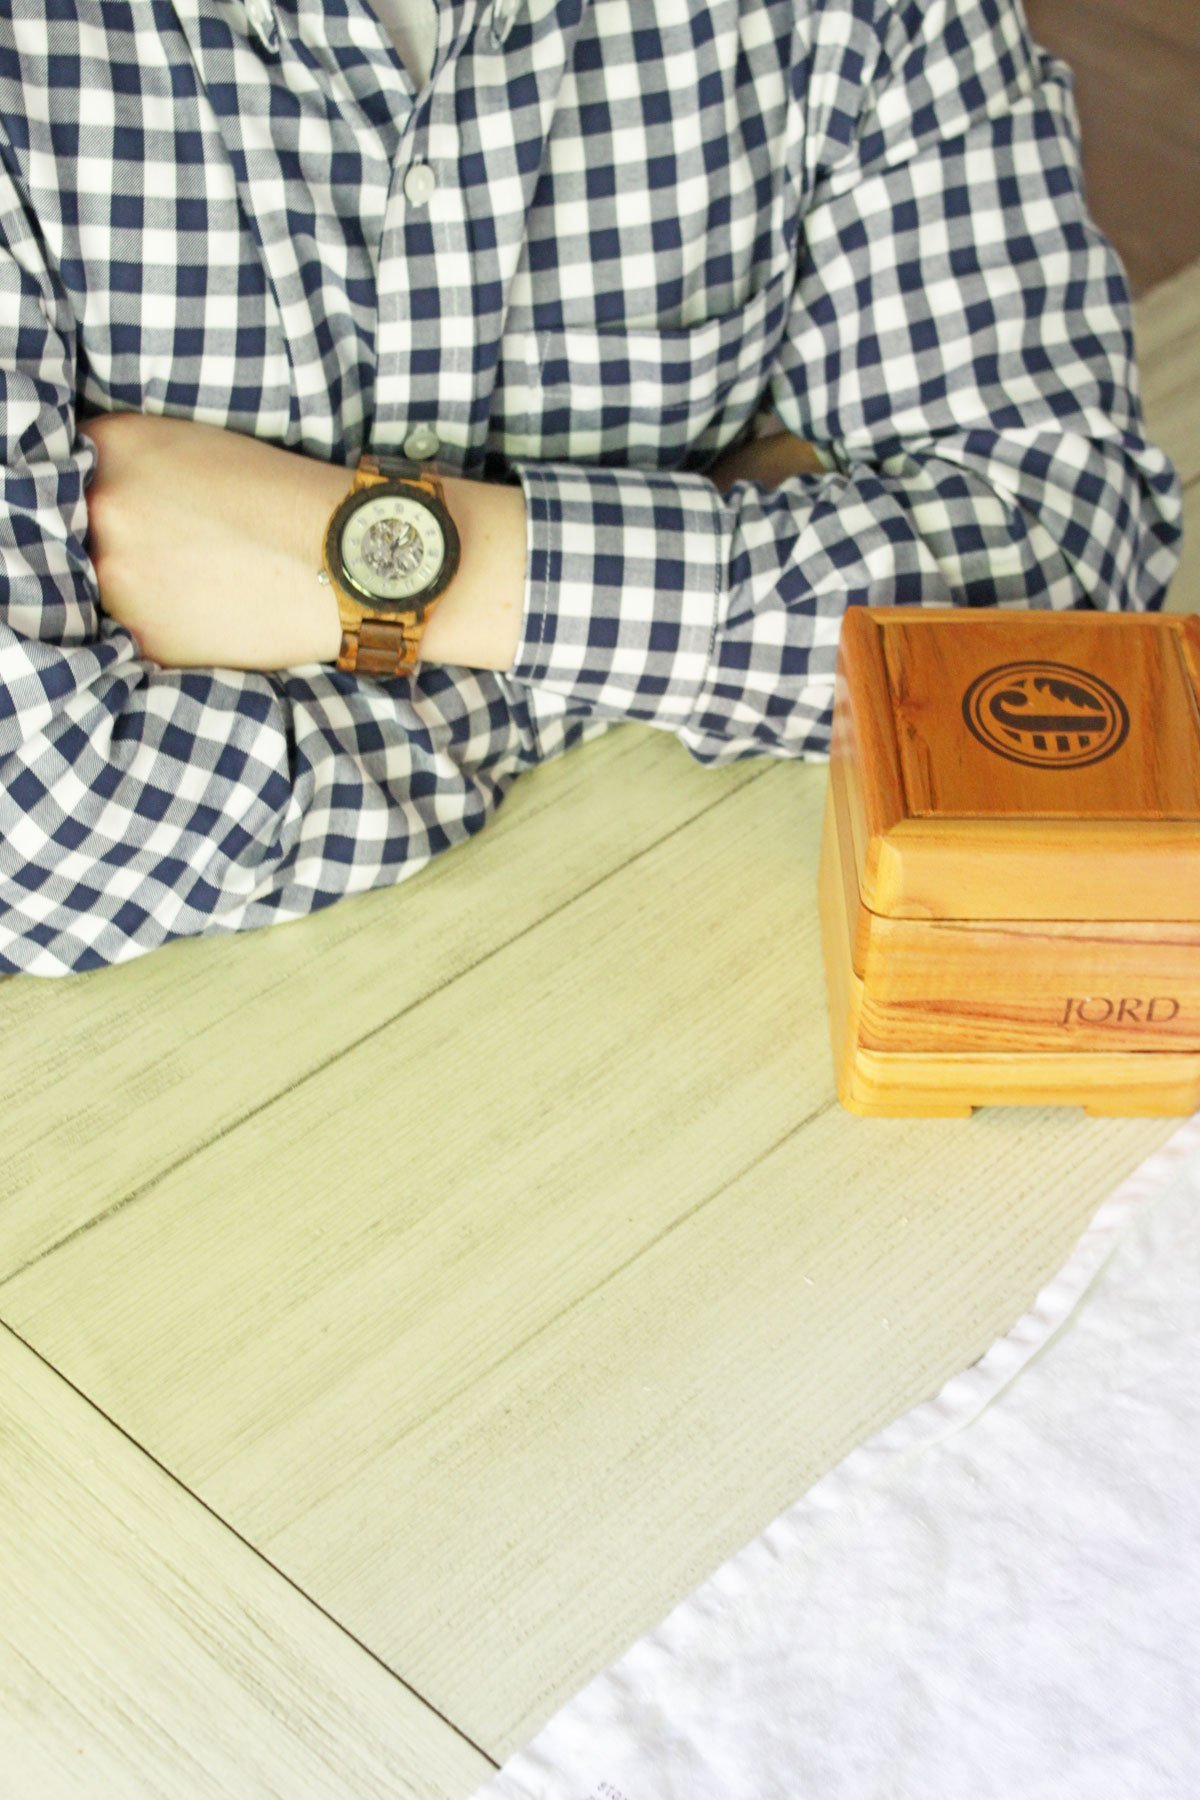 Celebrate Father's Day with JORD - Men's JORD Watch & box